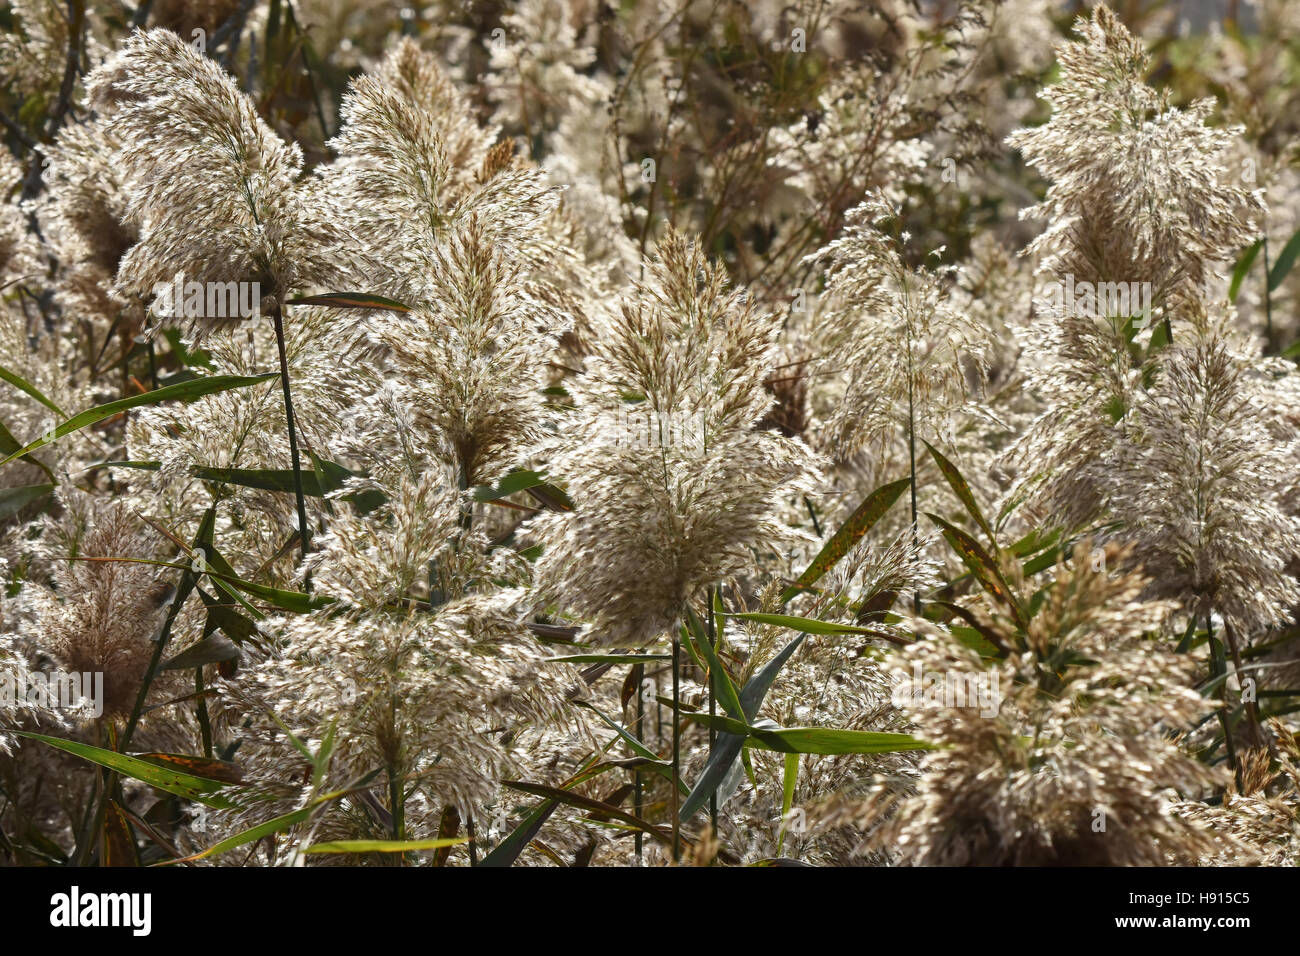 Reed - Stock Image